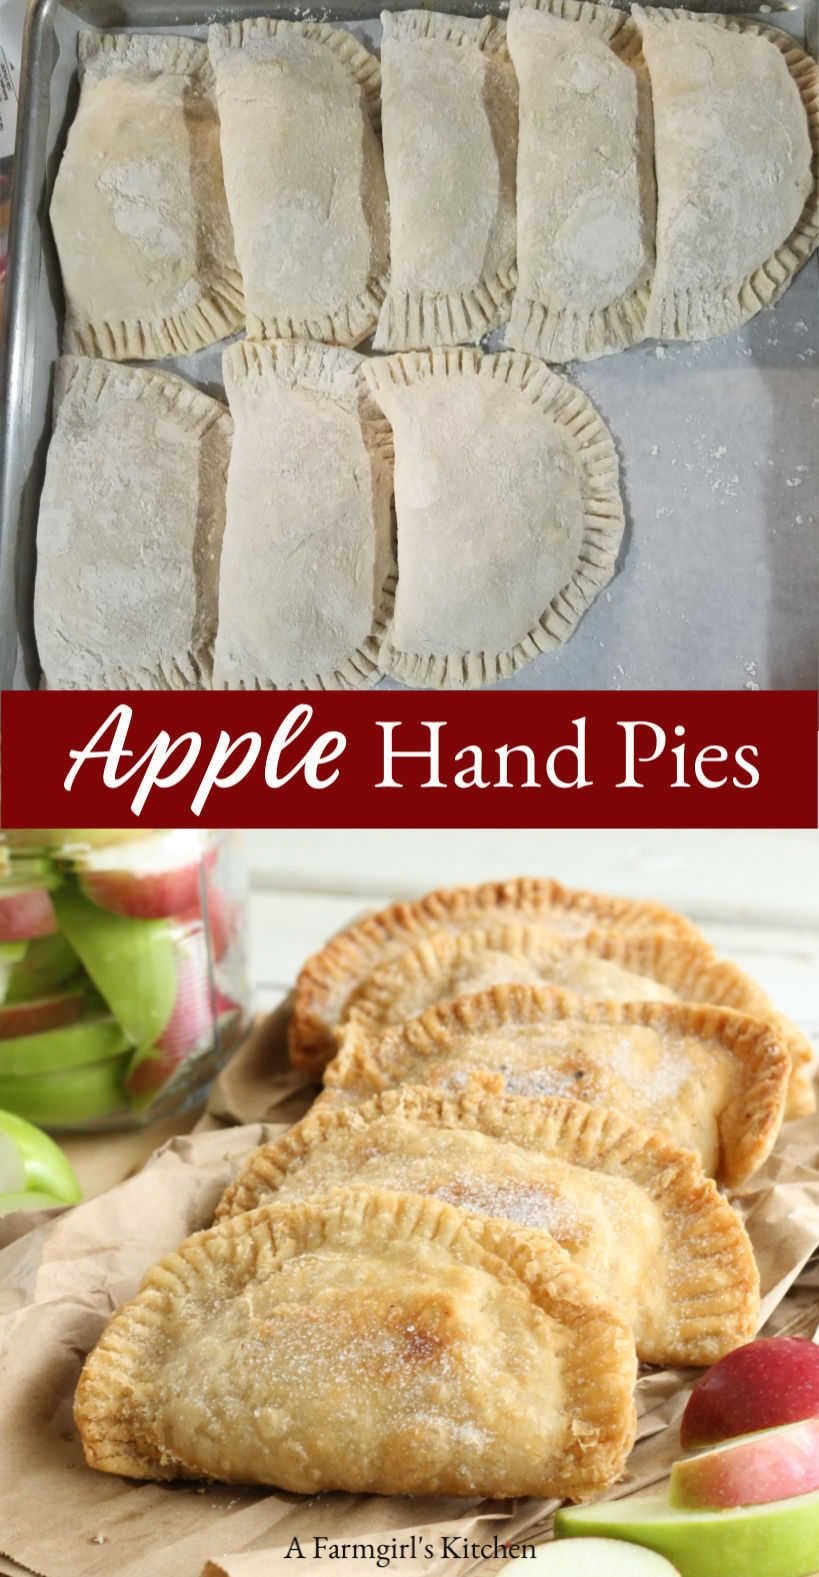 Apple Hand Pies (Use homemade pie crust OR store-bought refrigerated biscuits)